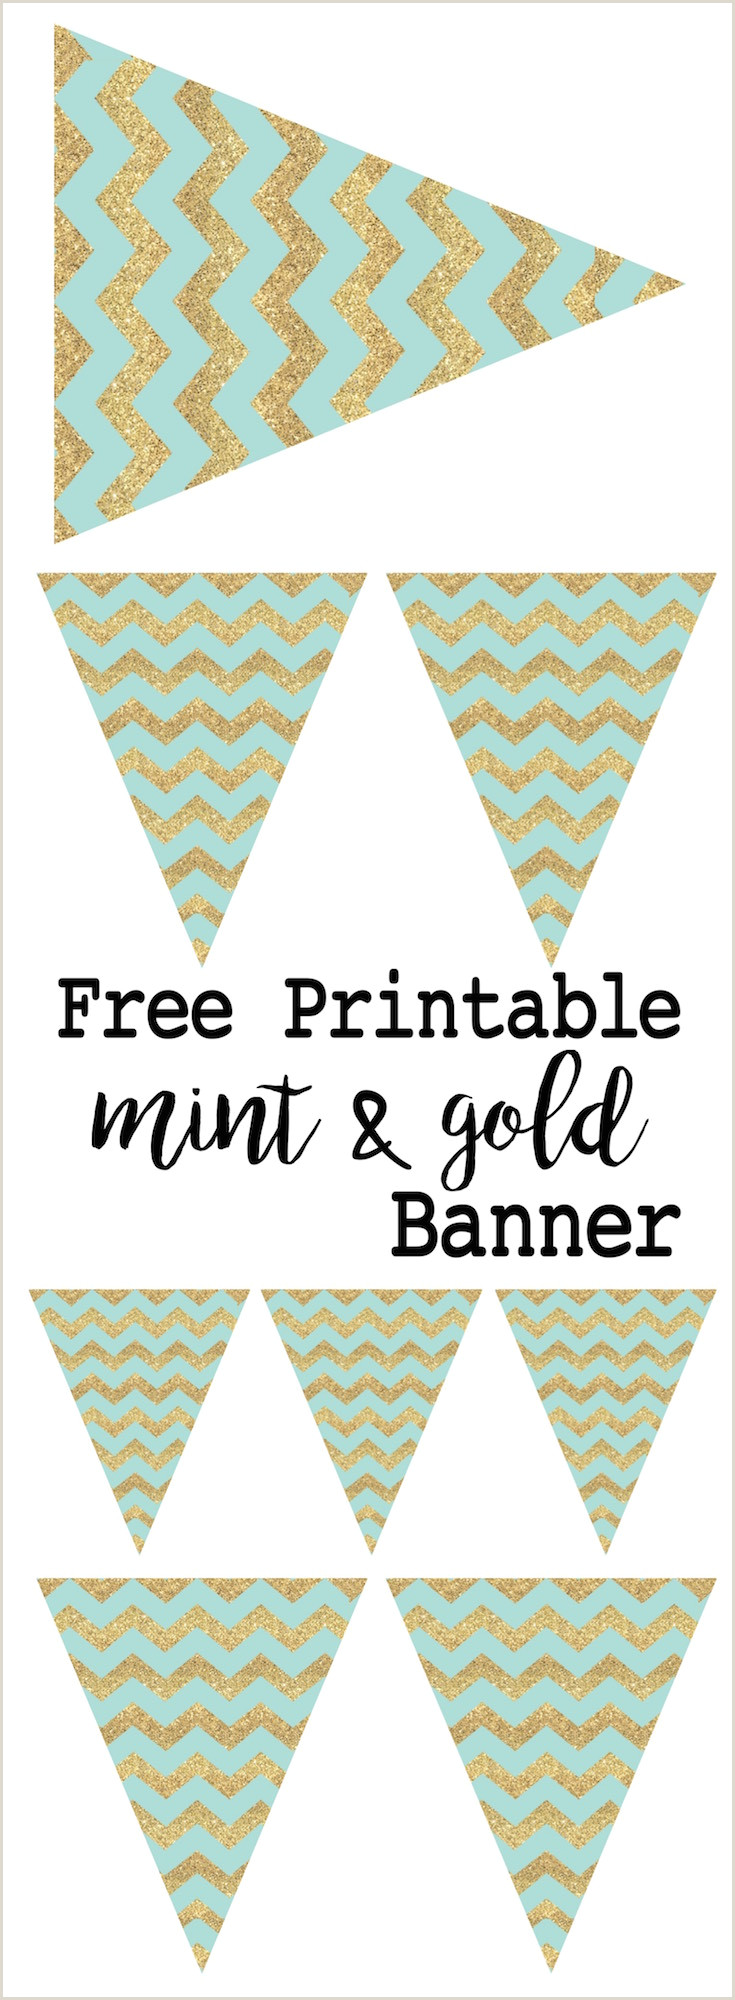 Vistaprint Banners Free Printed Mint Template